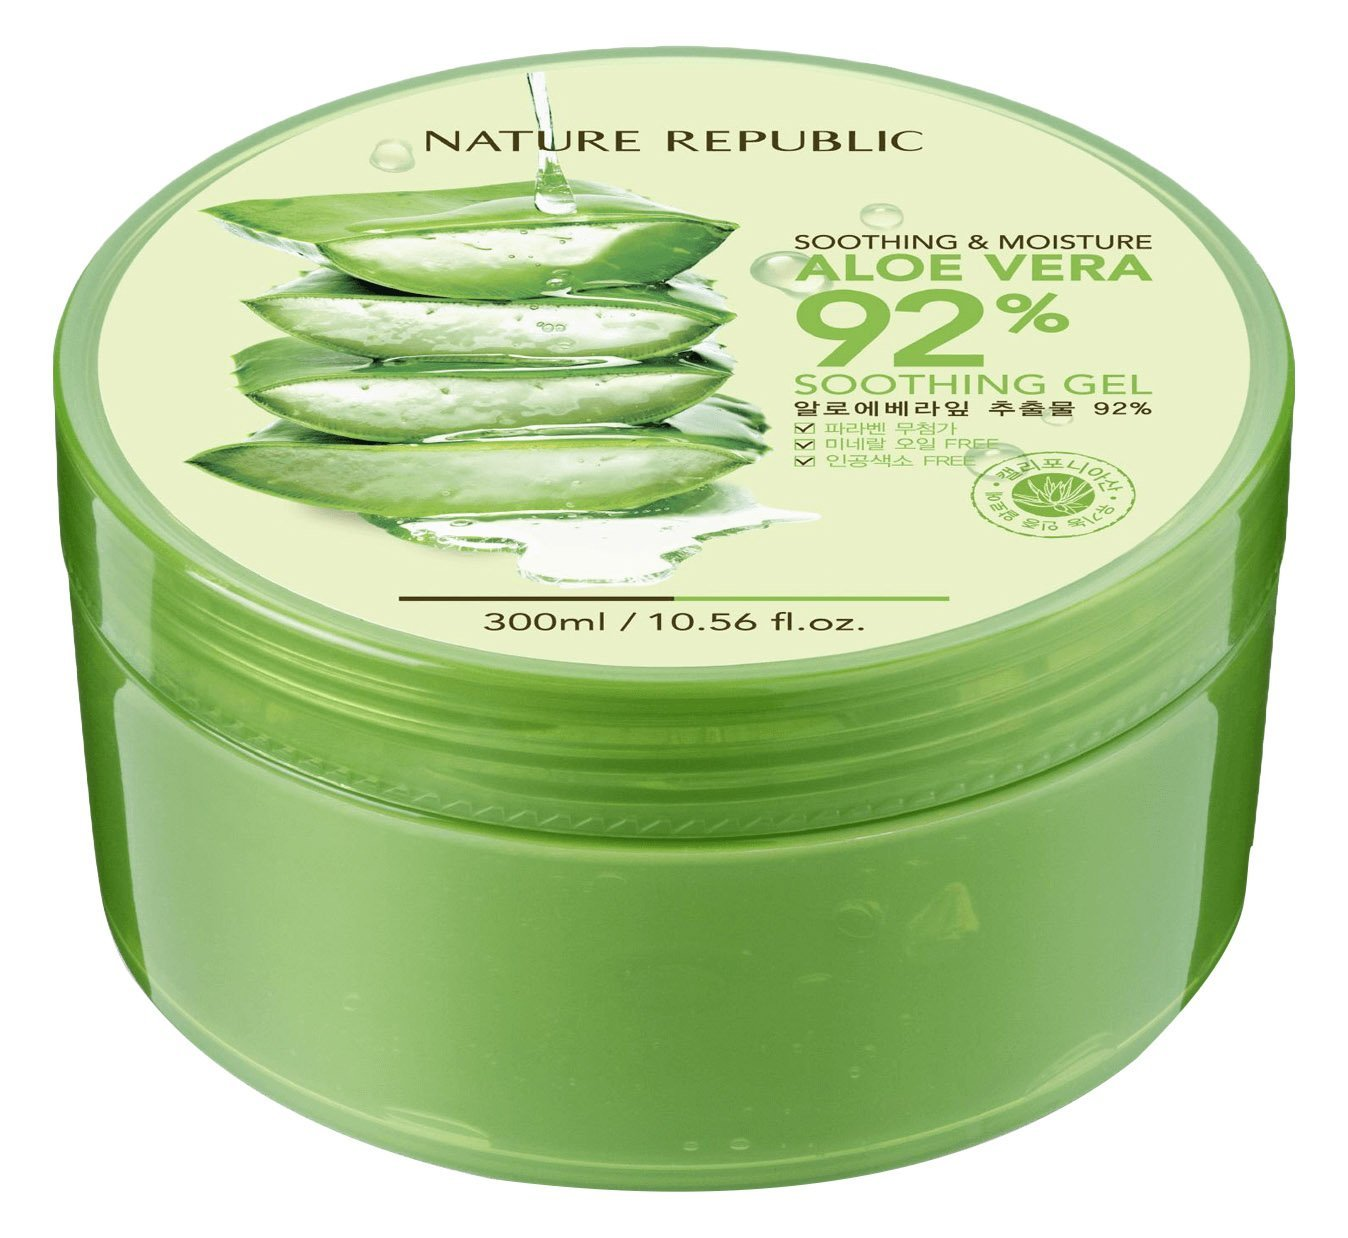 Nature republic soothing and moisture aloe vera 92 soothing gel 300ml - Amazon Com Natural Republic Aloe Vera Gel 300ml 10 56 Fluid Ounce Skin Care Products Beauty